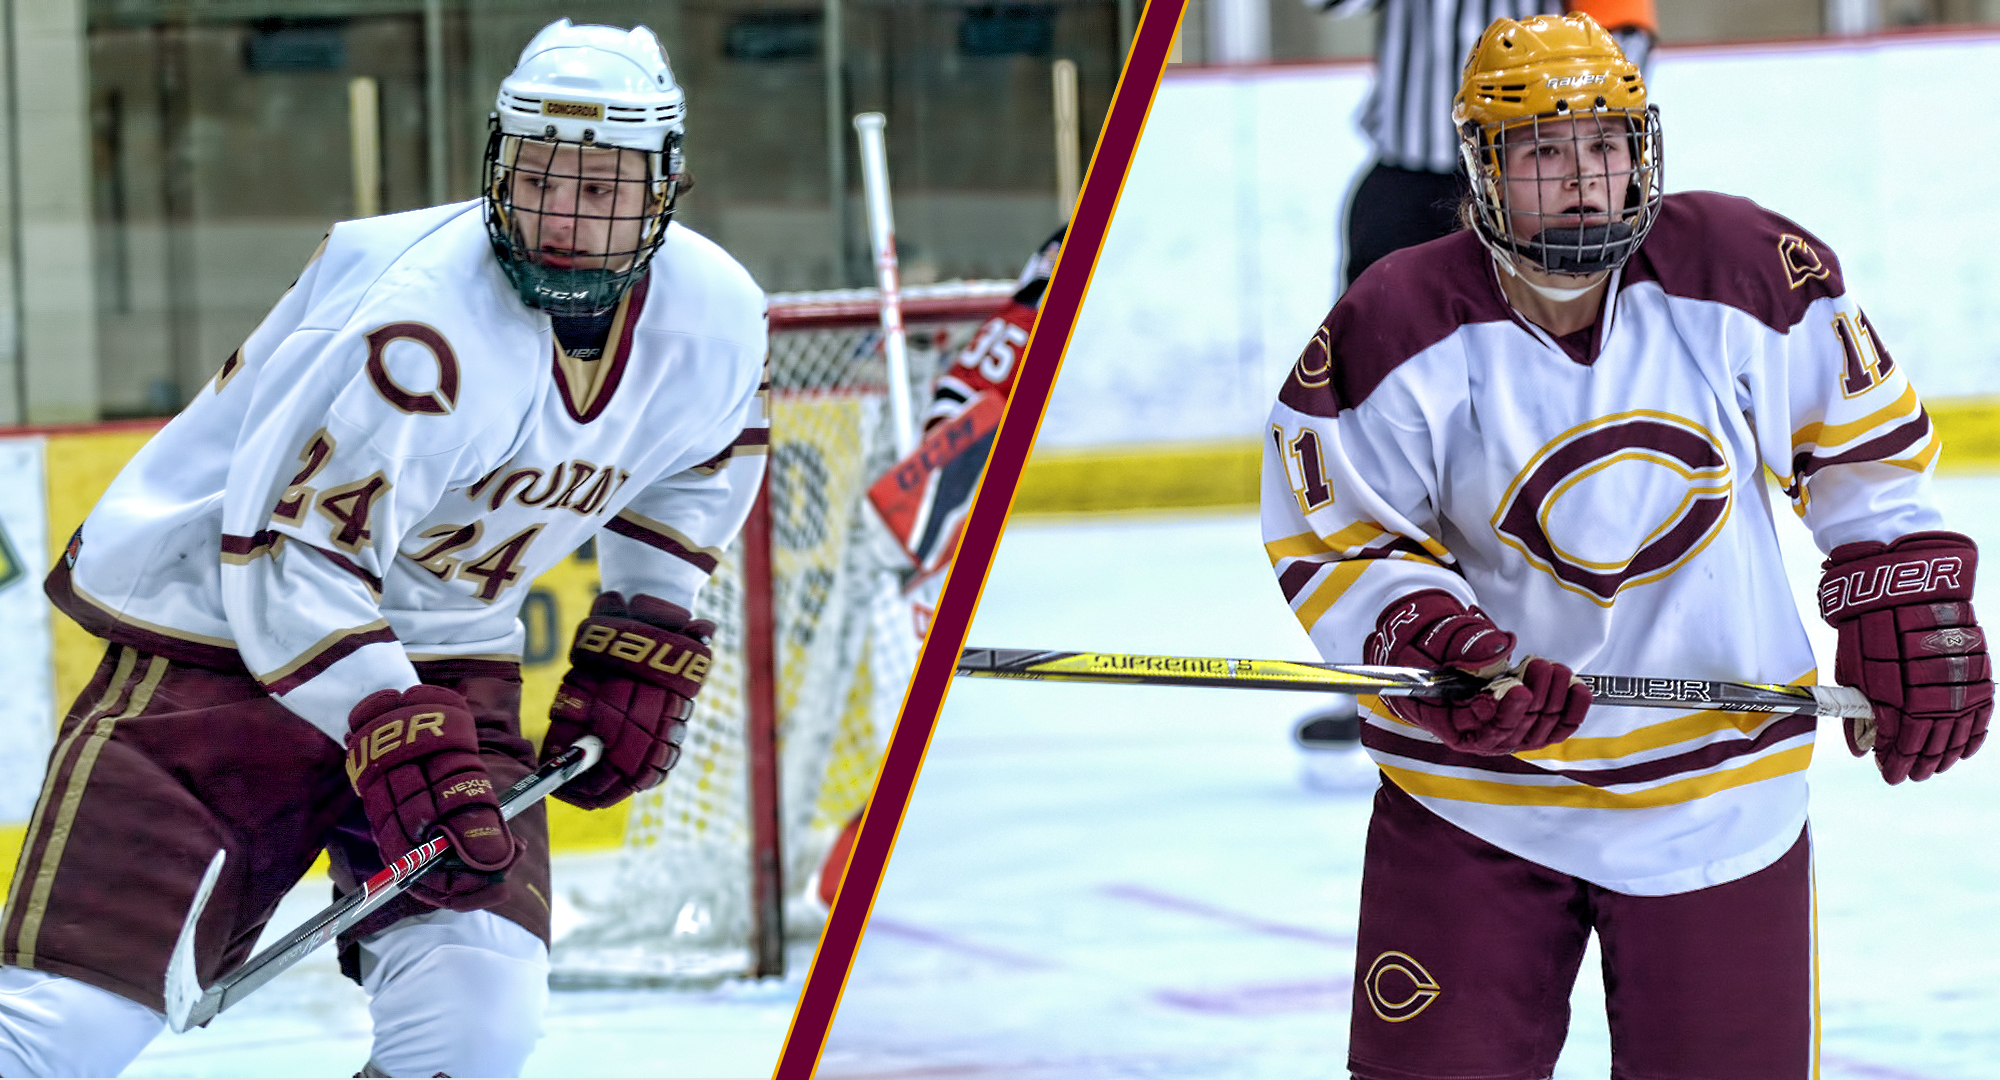 Jake Ellingson is a member of the Cobber men's hockey team while sister Maddie skates on the women's squad.